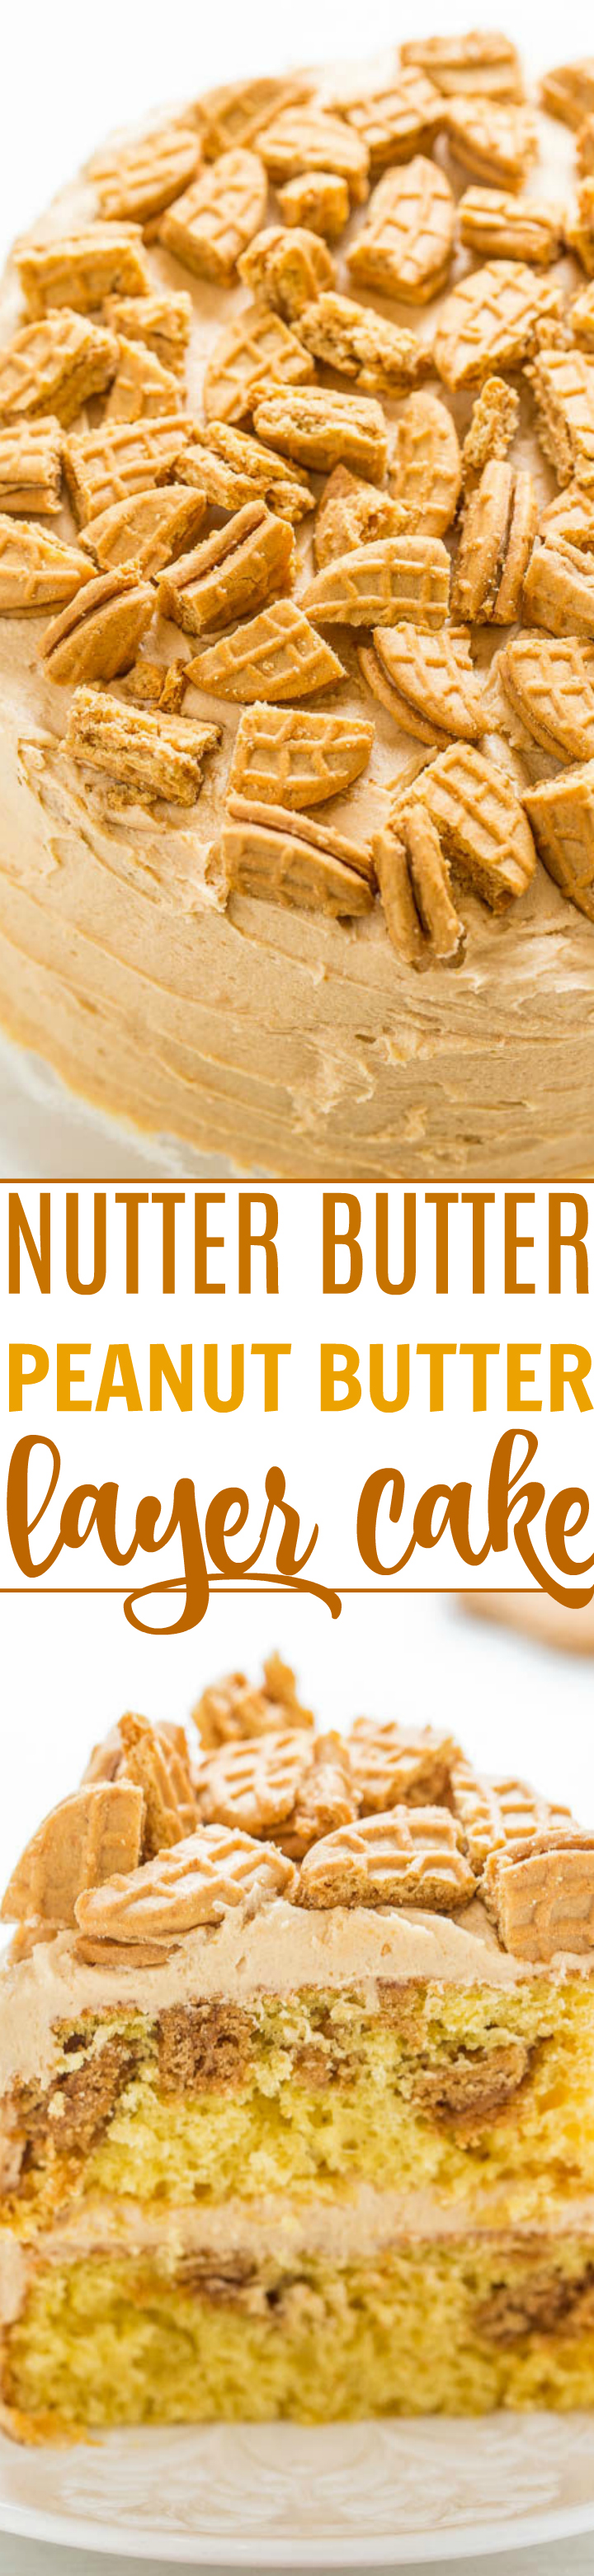 Nutter Butter Peanut Butter Layer Cake - Soft yellow cake with Nutter Butters baked in AND sprinkled on top!! The peanut butter FROSTING is rich, creamy, and decadent! Peanut butter fans will LOVE this cake!!